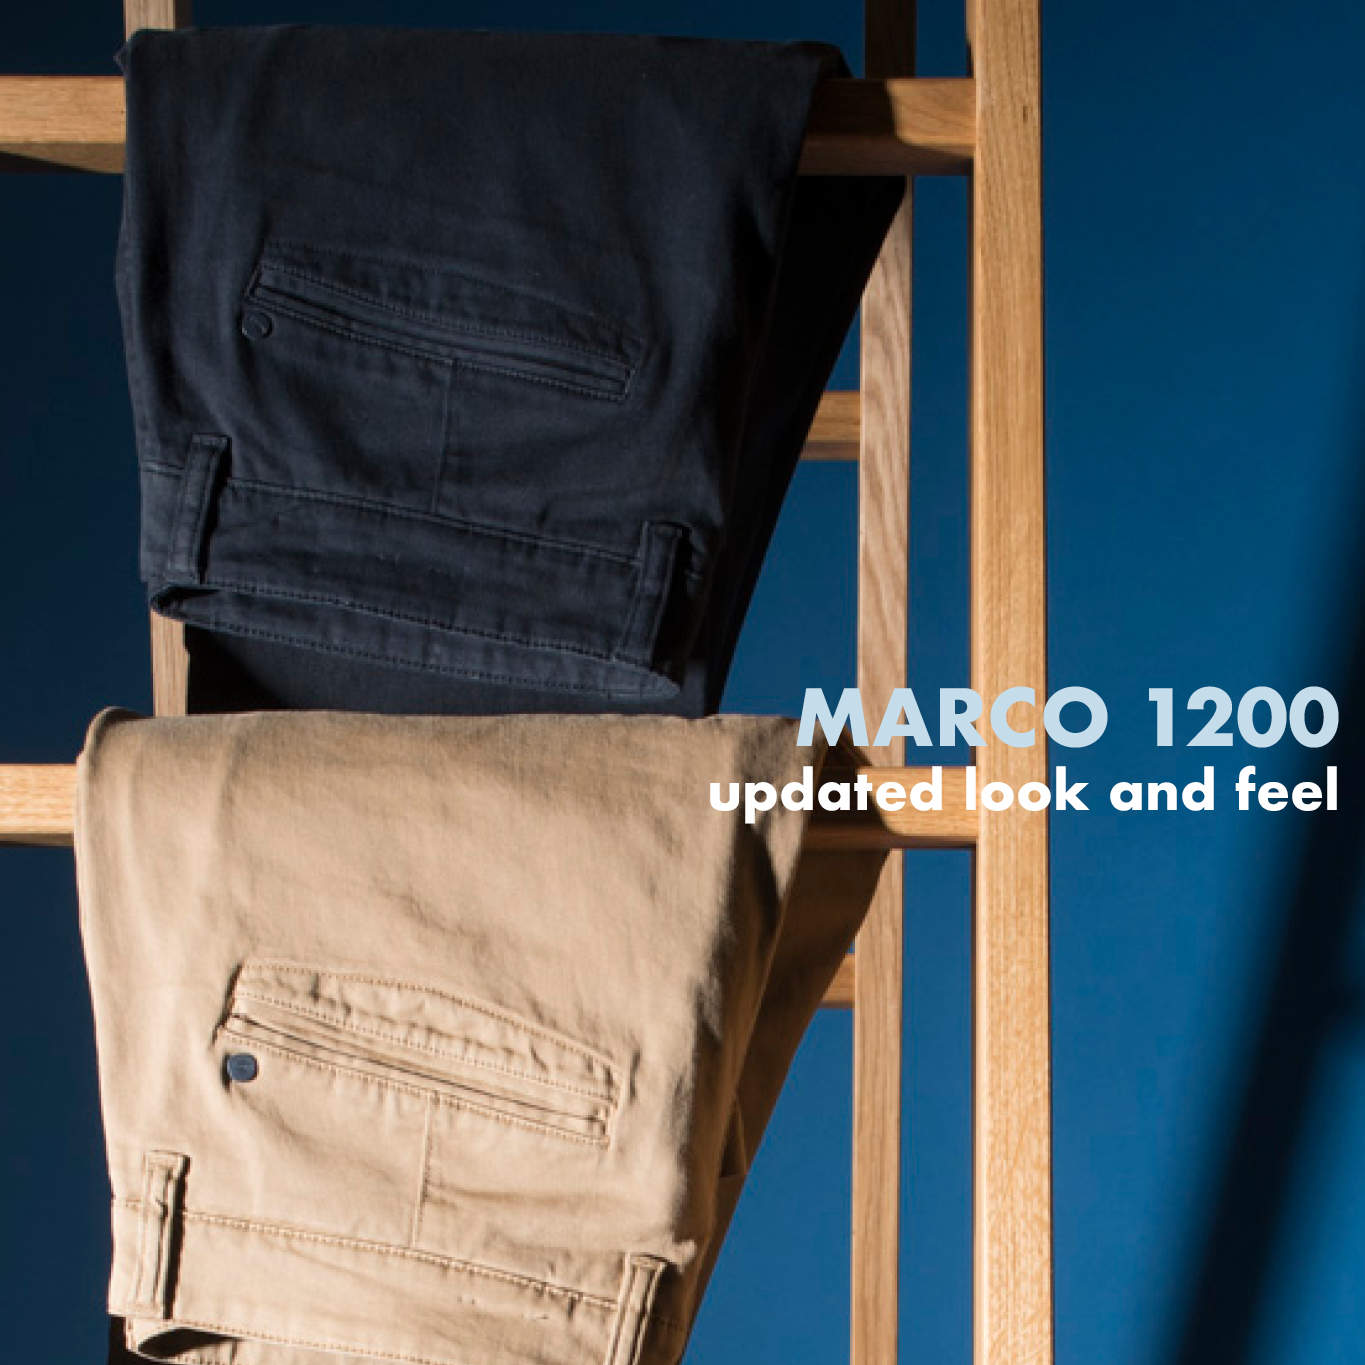 Marco 1200 - Updated look and feel